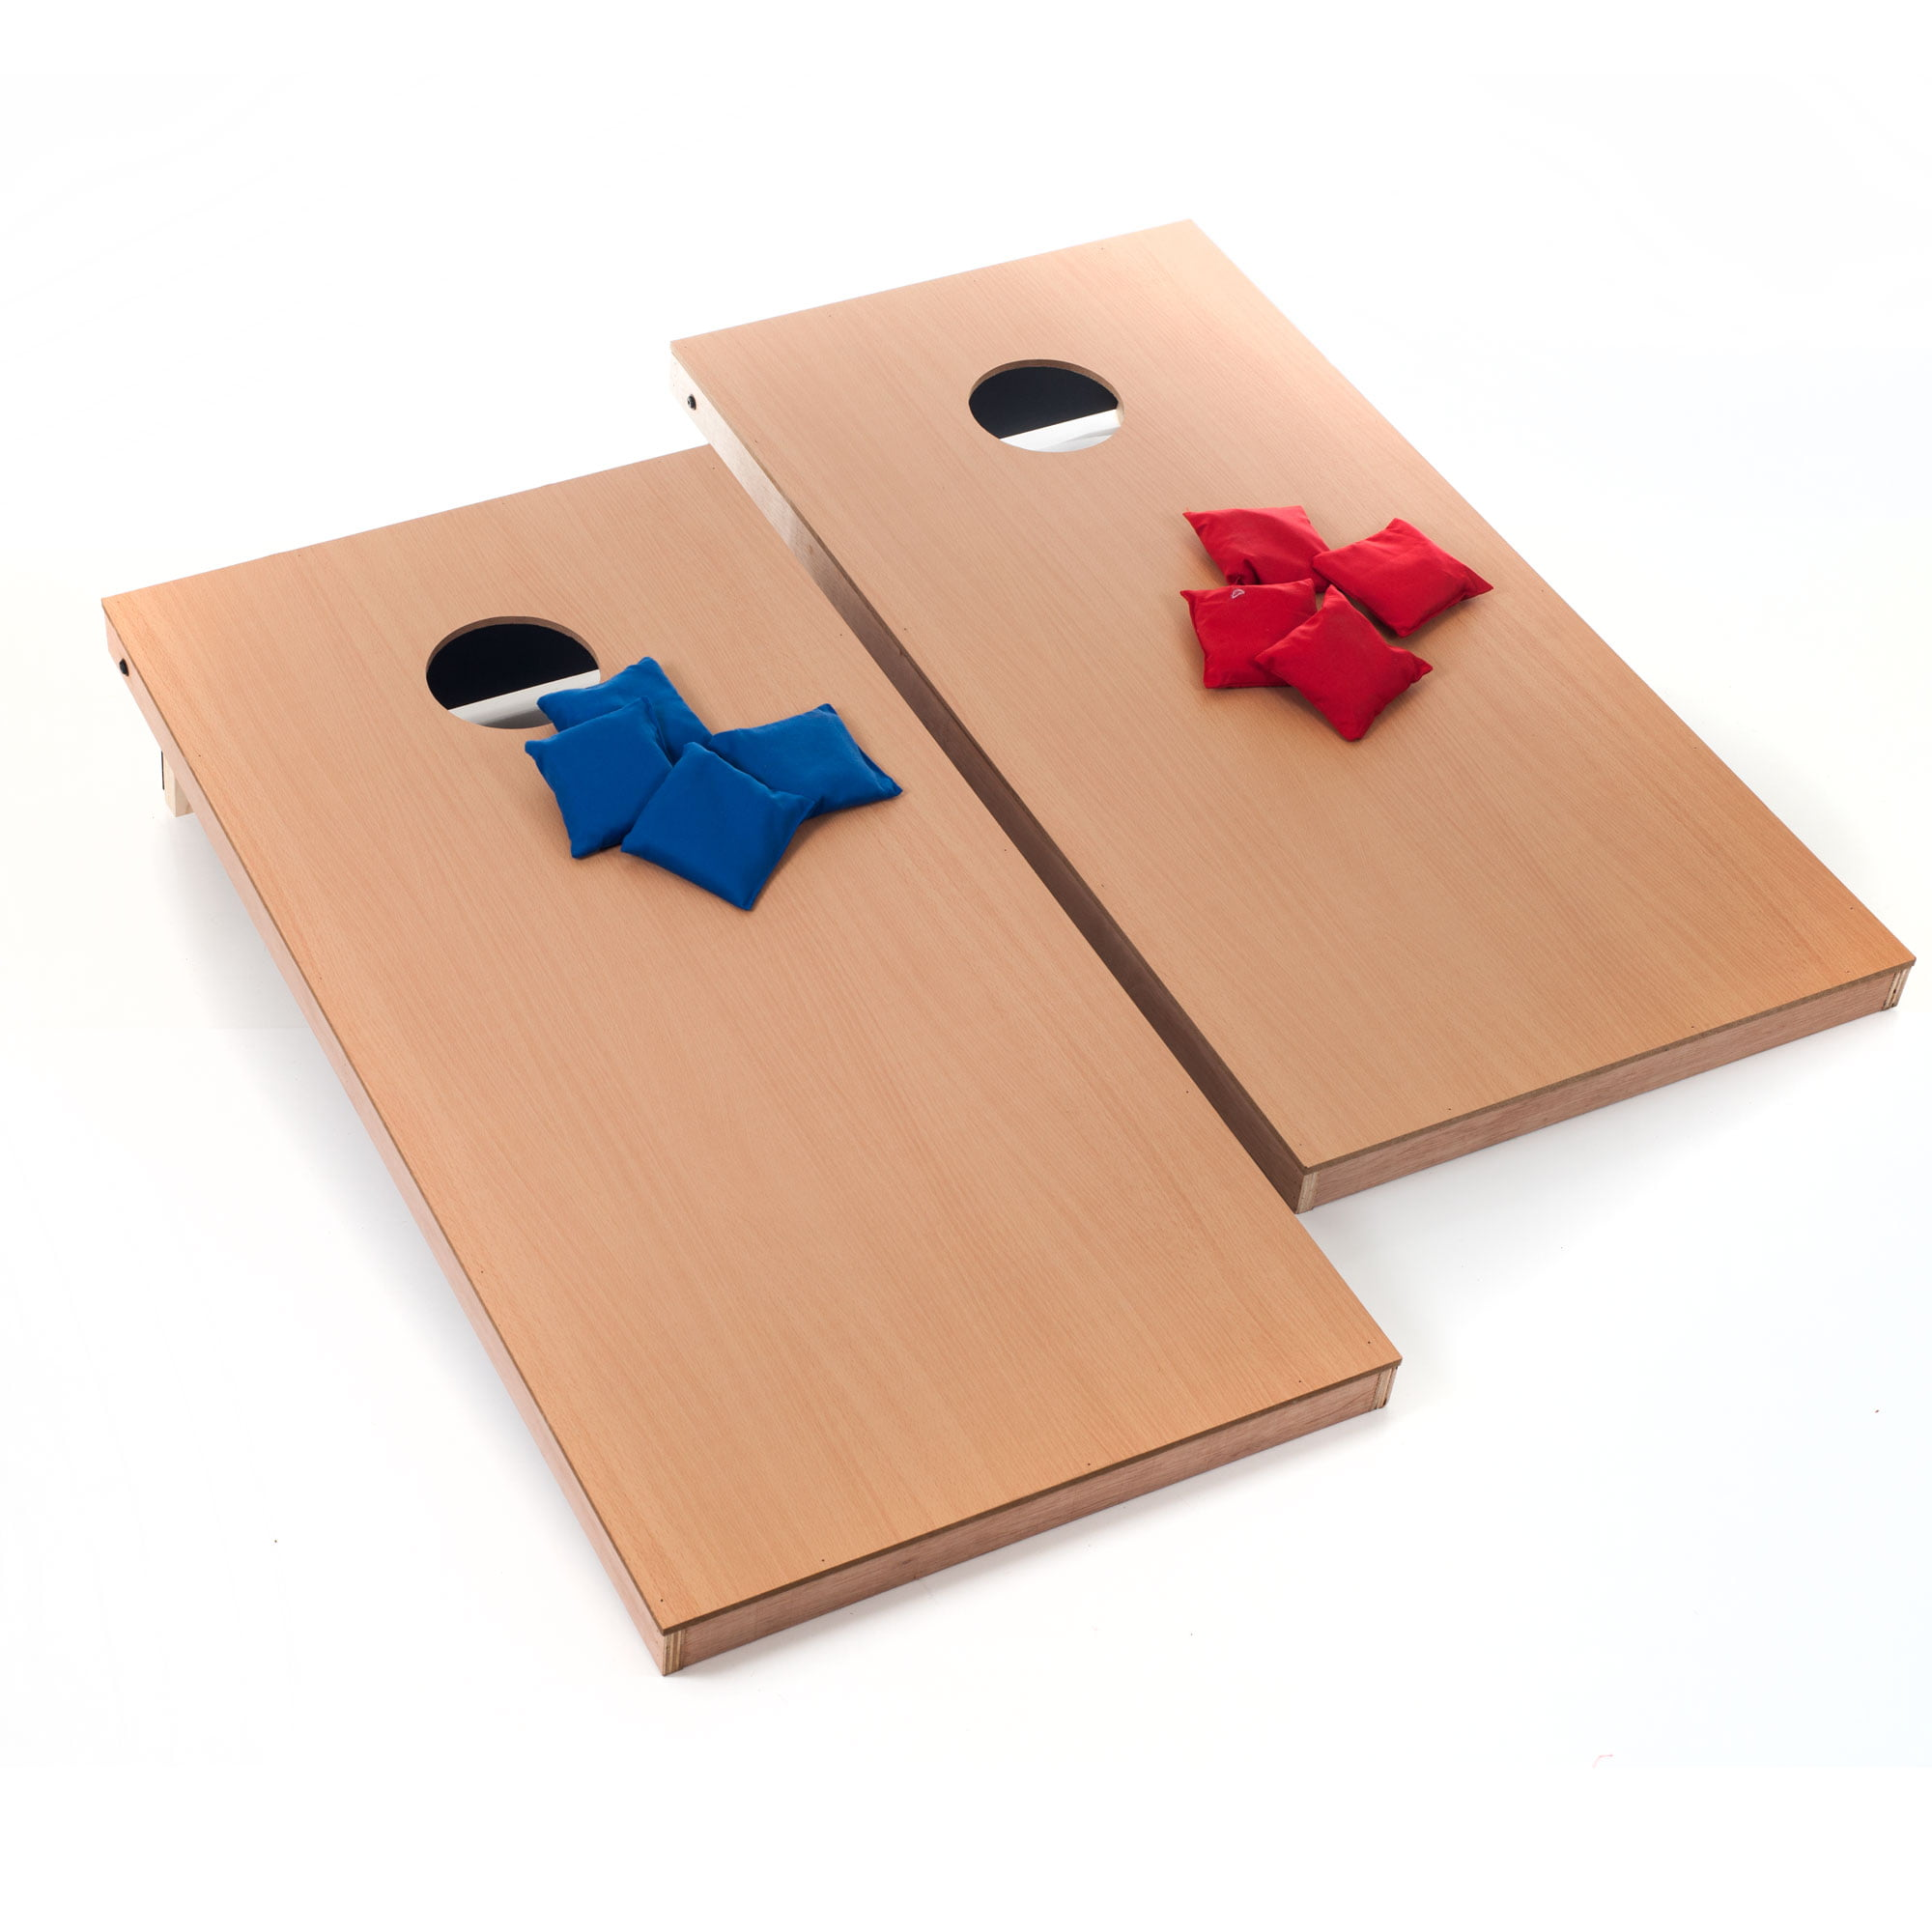 Official Size Cornhole Game by Trademark Games by Trademark Global